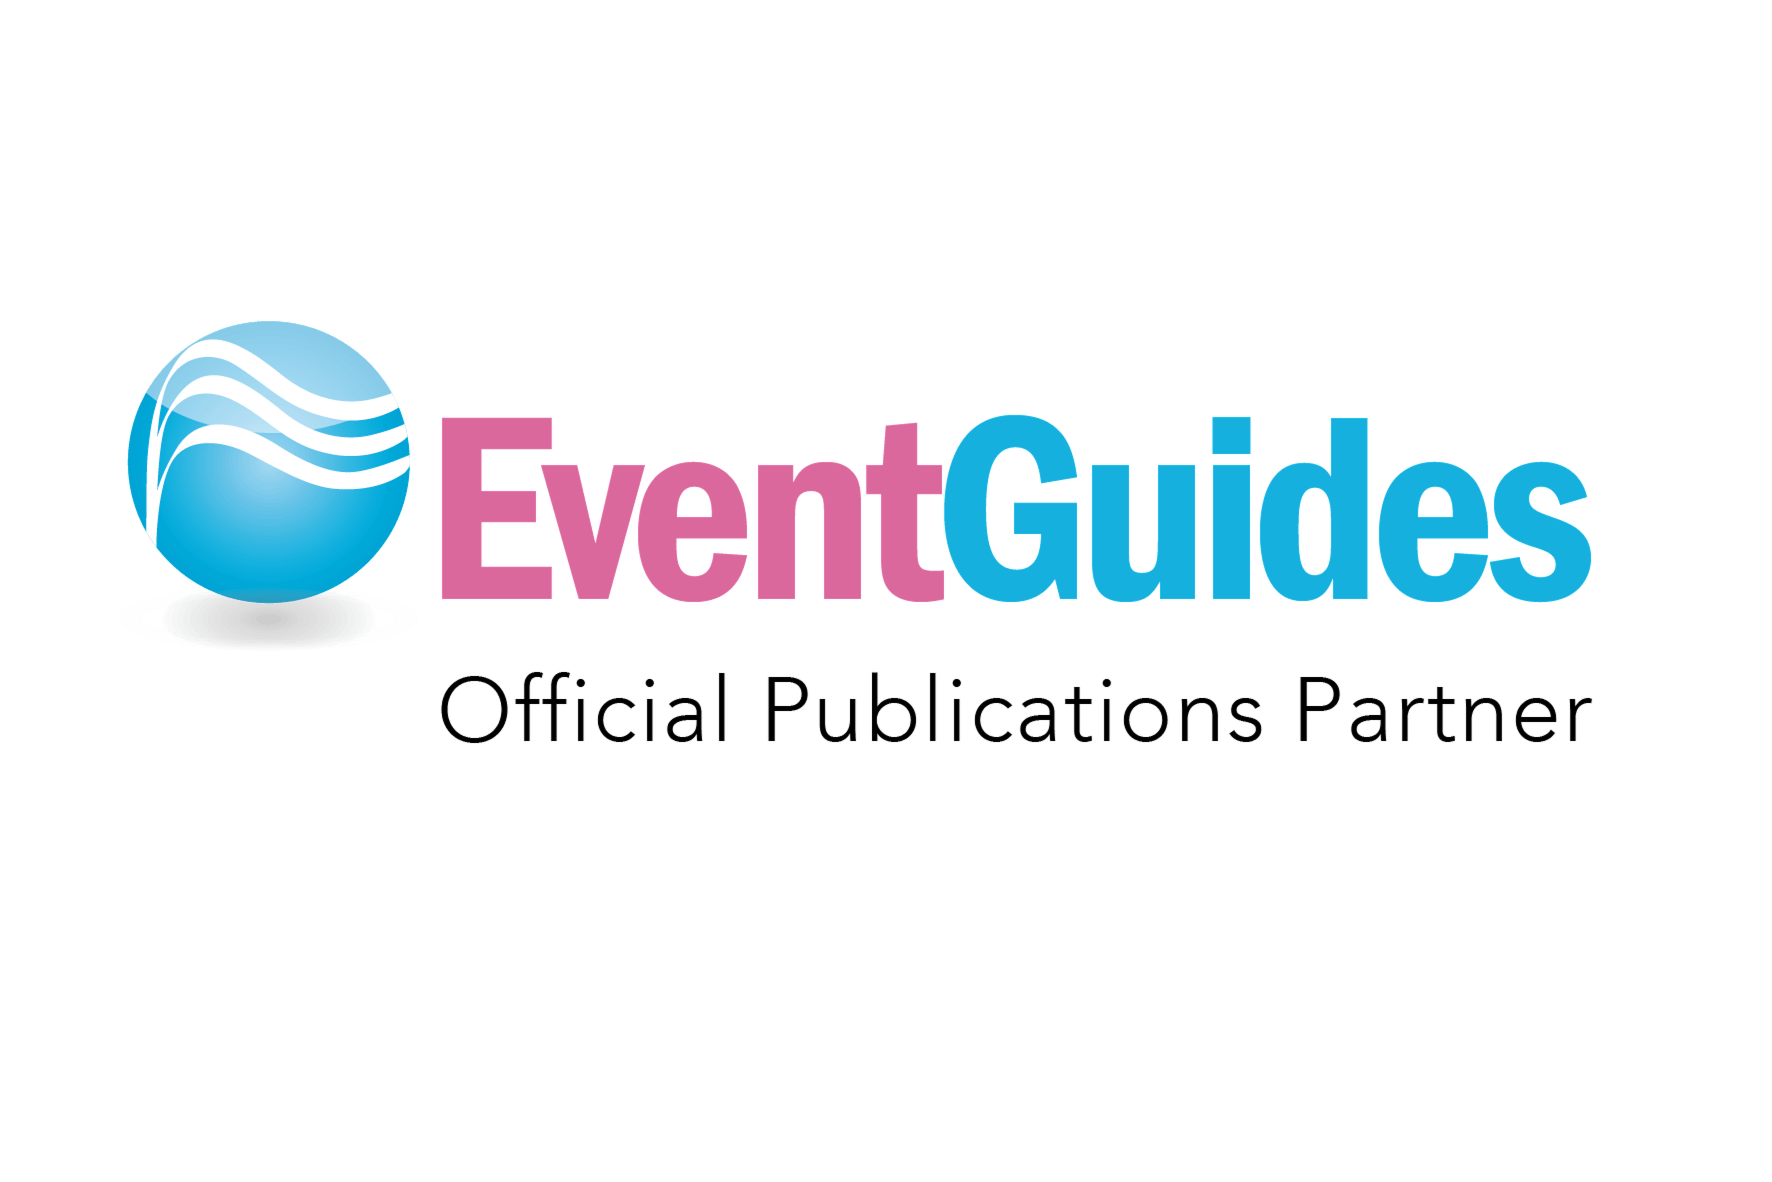 Official Publications Partner